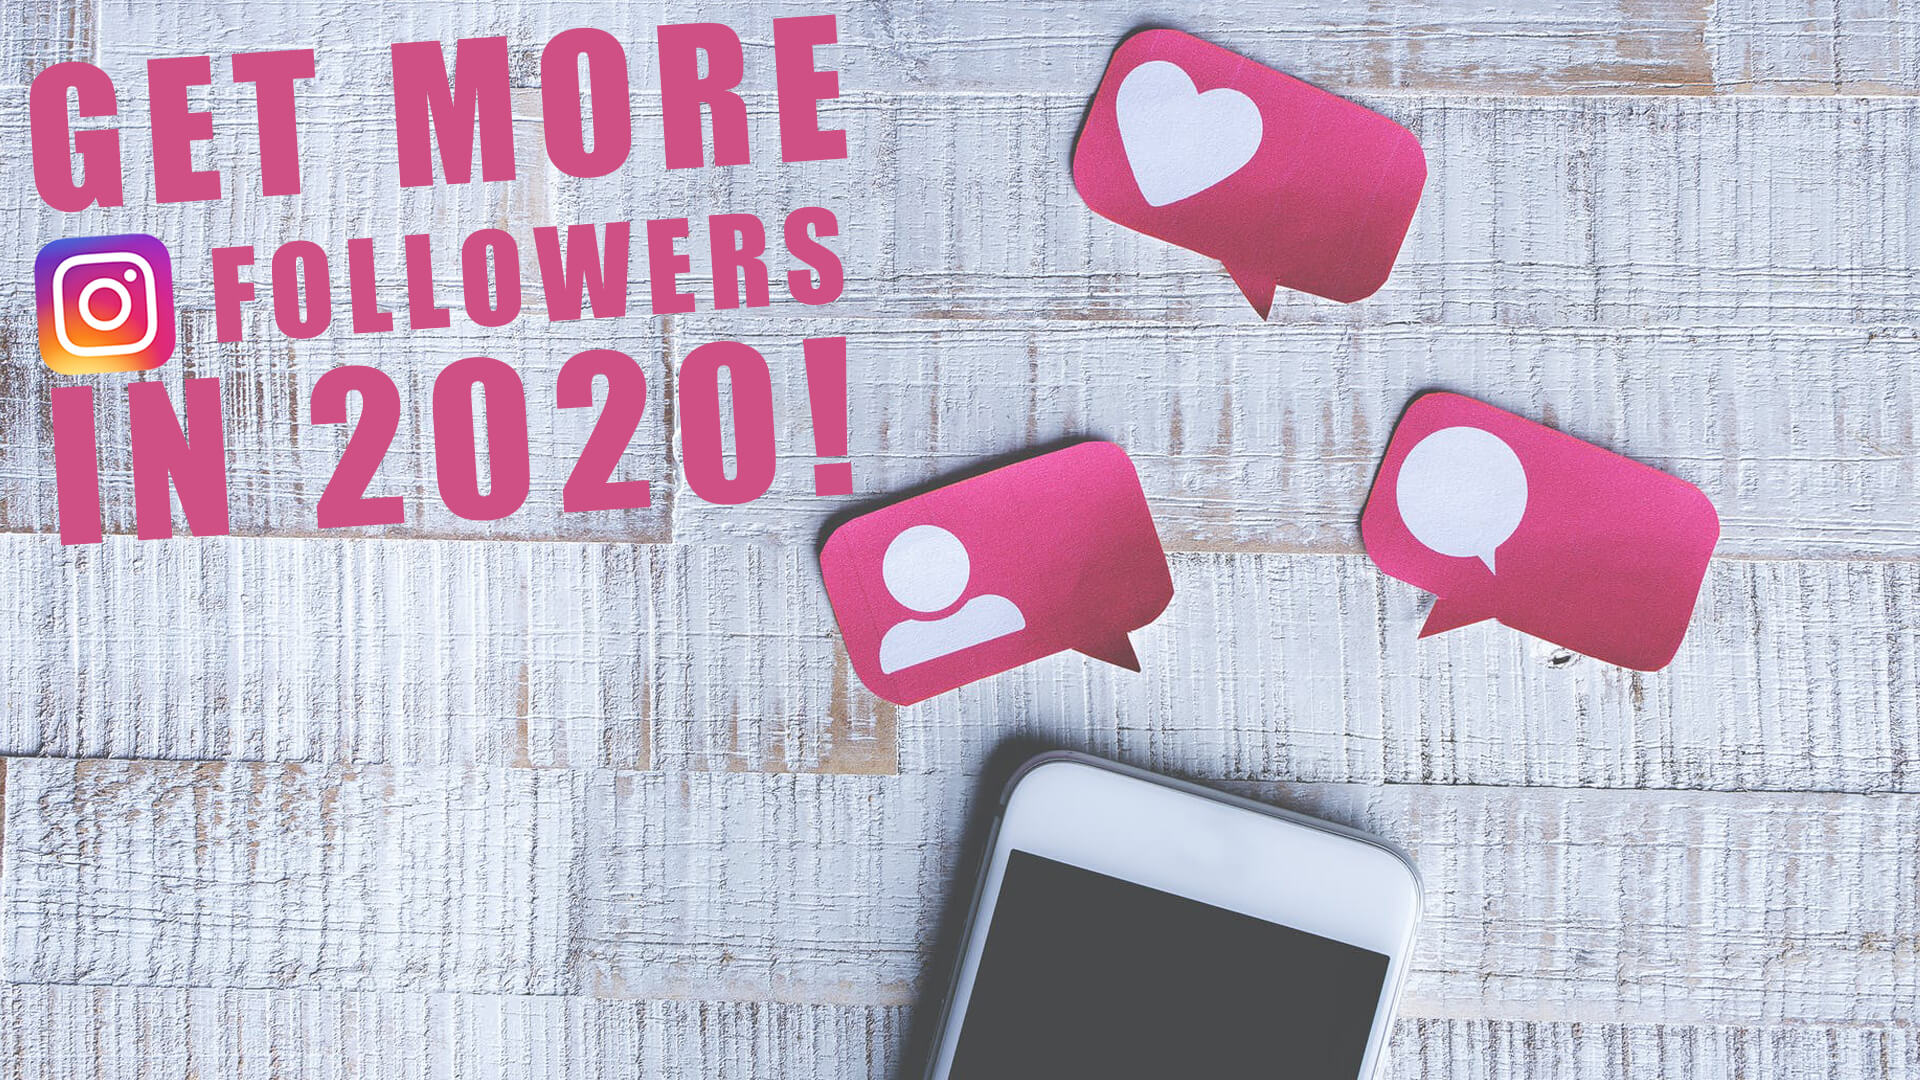 How to Get More Instagram Followers in 2020